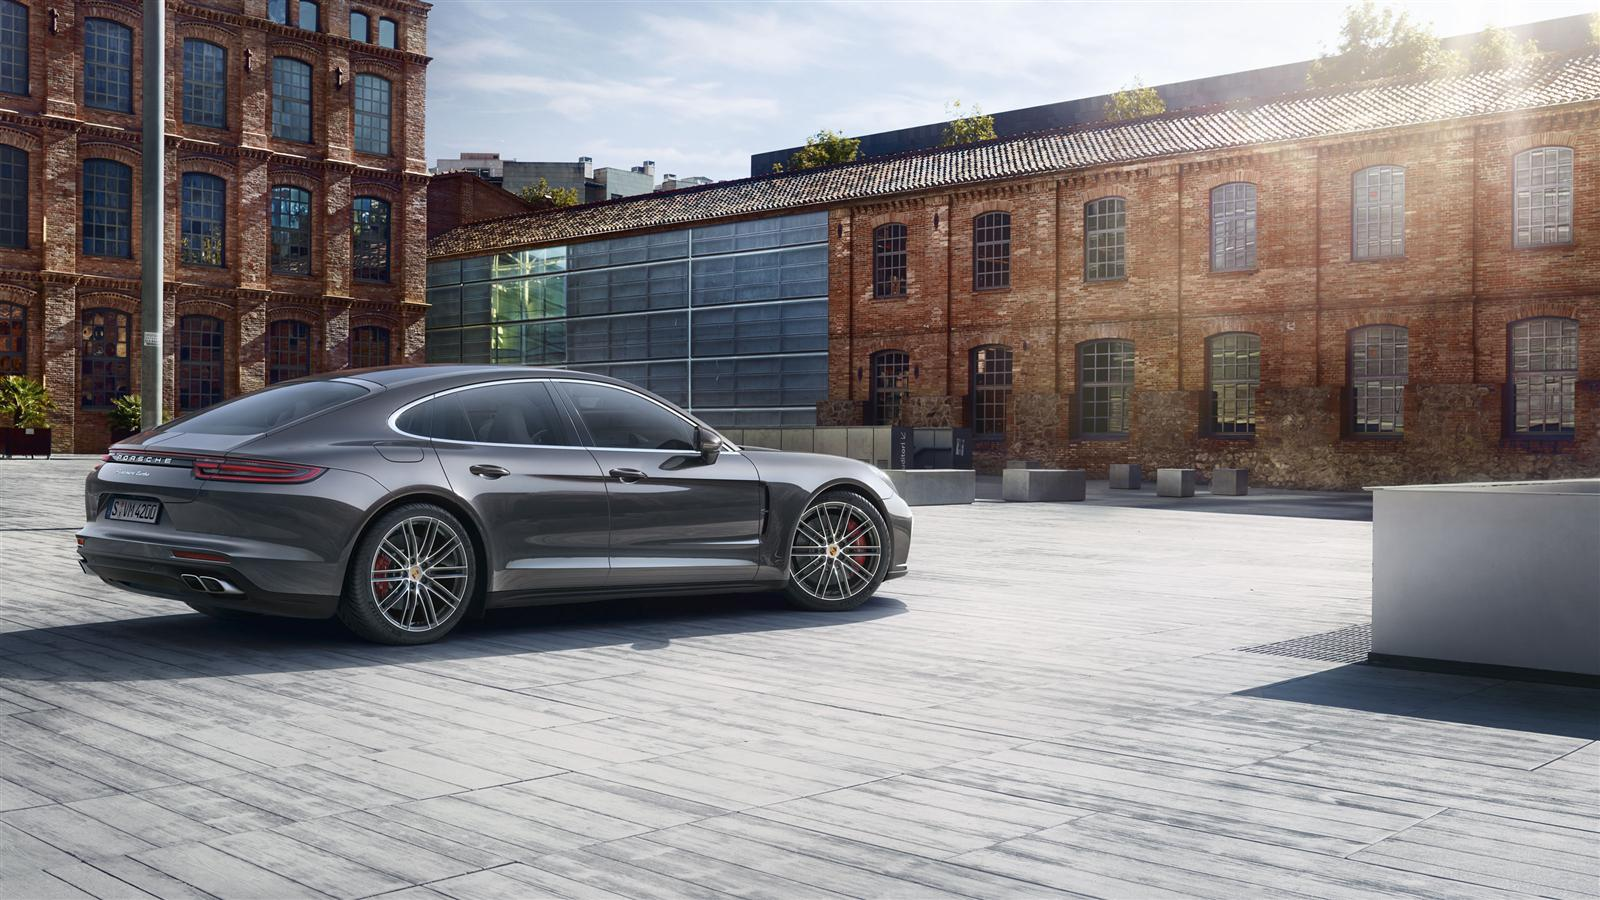 Porsche's New Turbo V8 Will Go Into These Two Luxury Brands